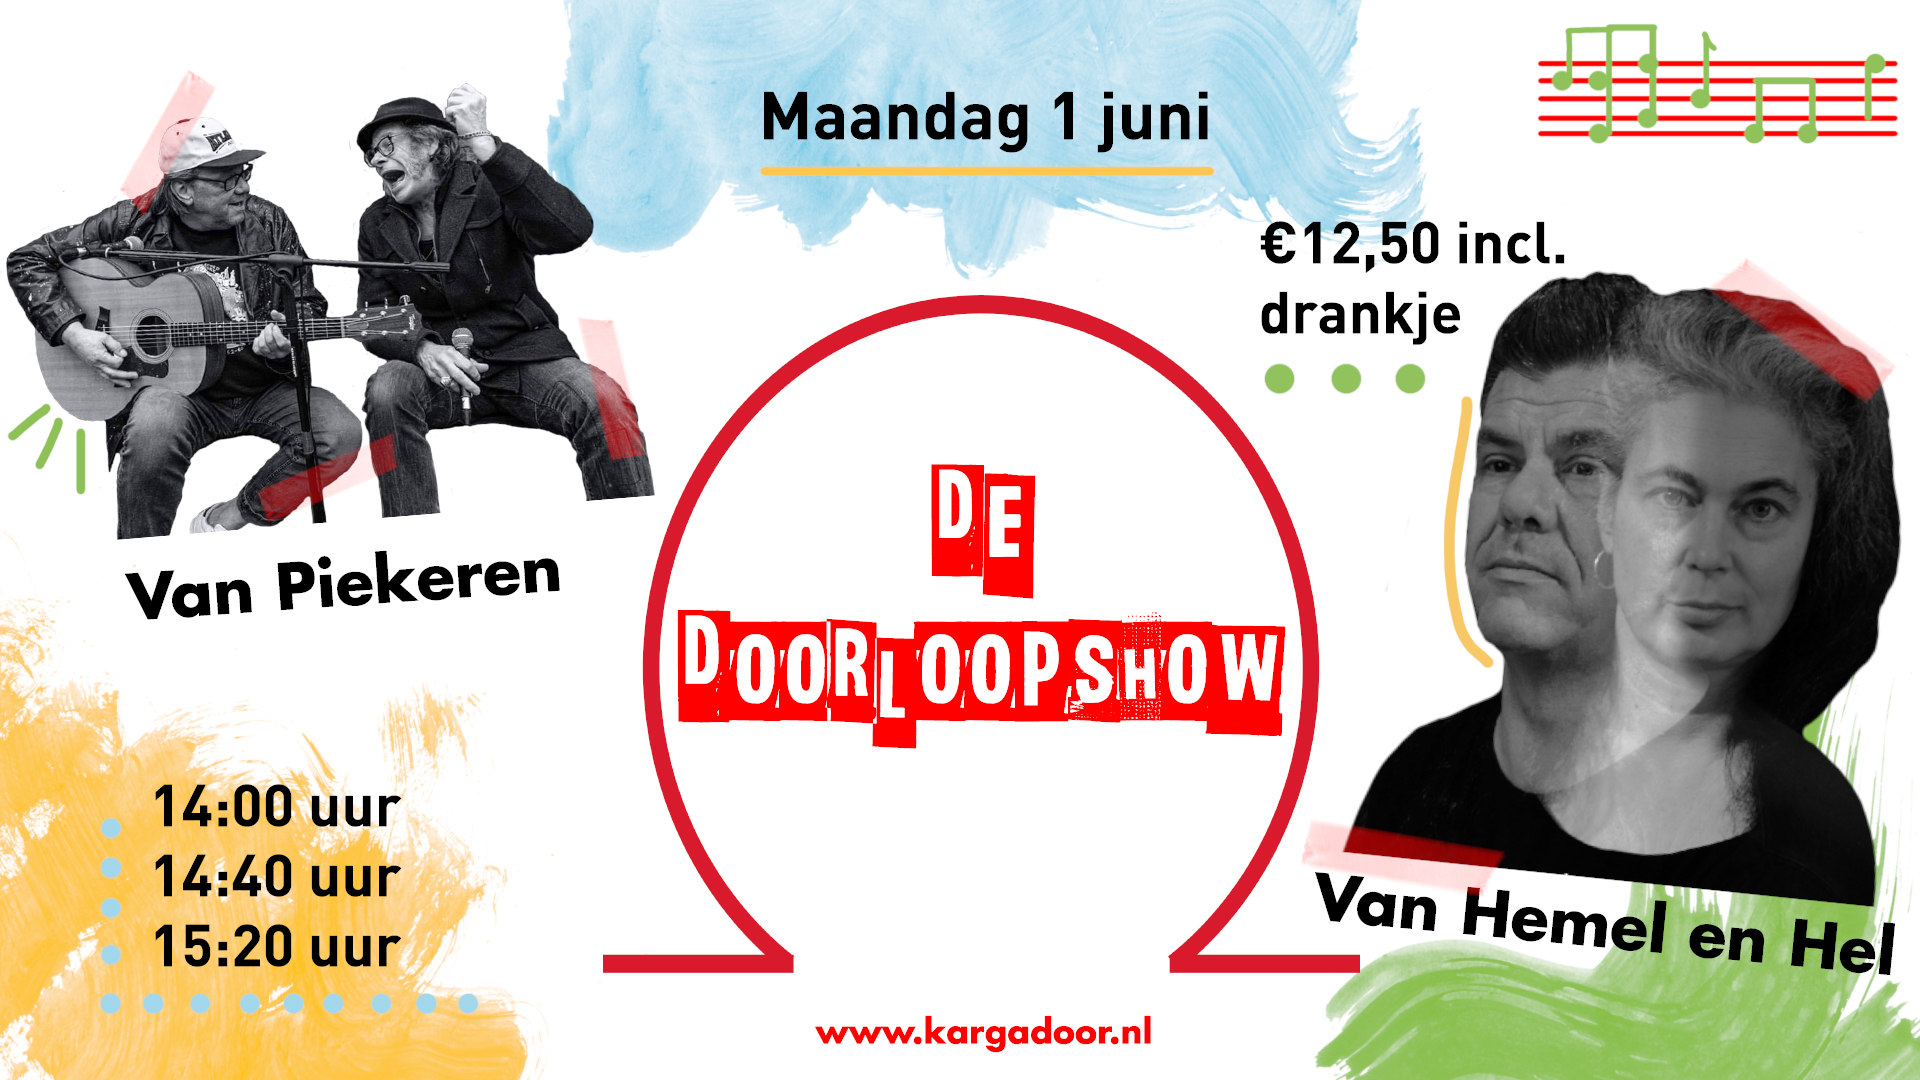 De Doorloop Show